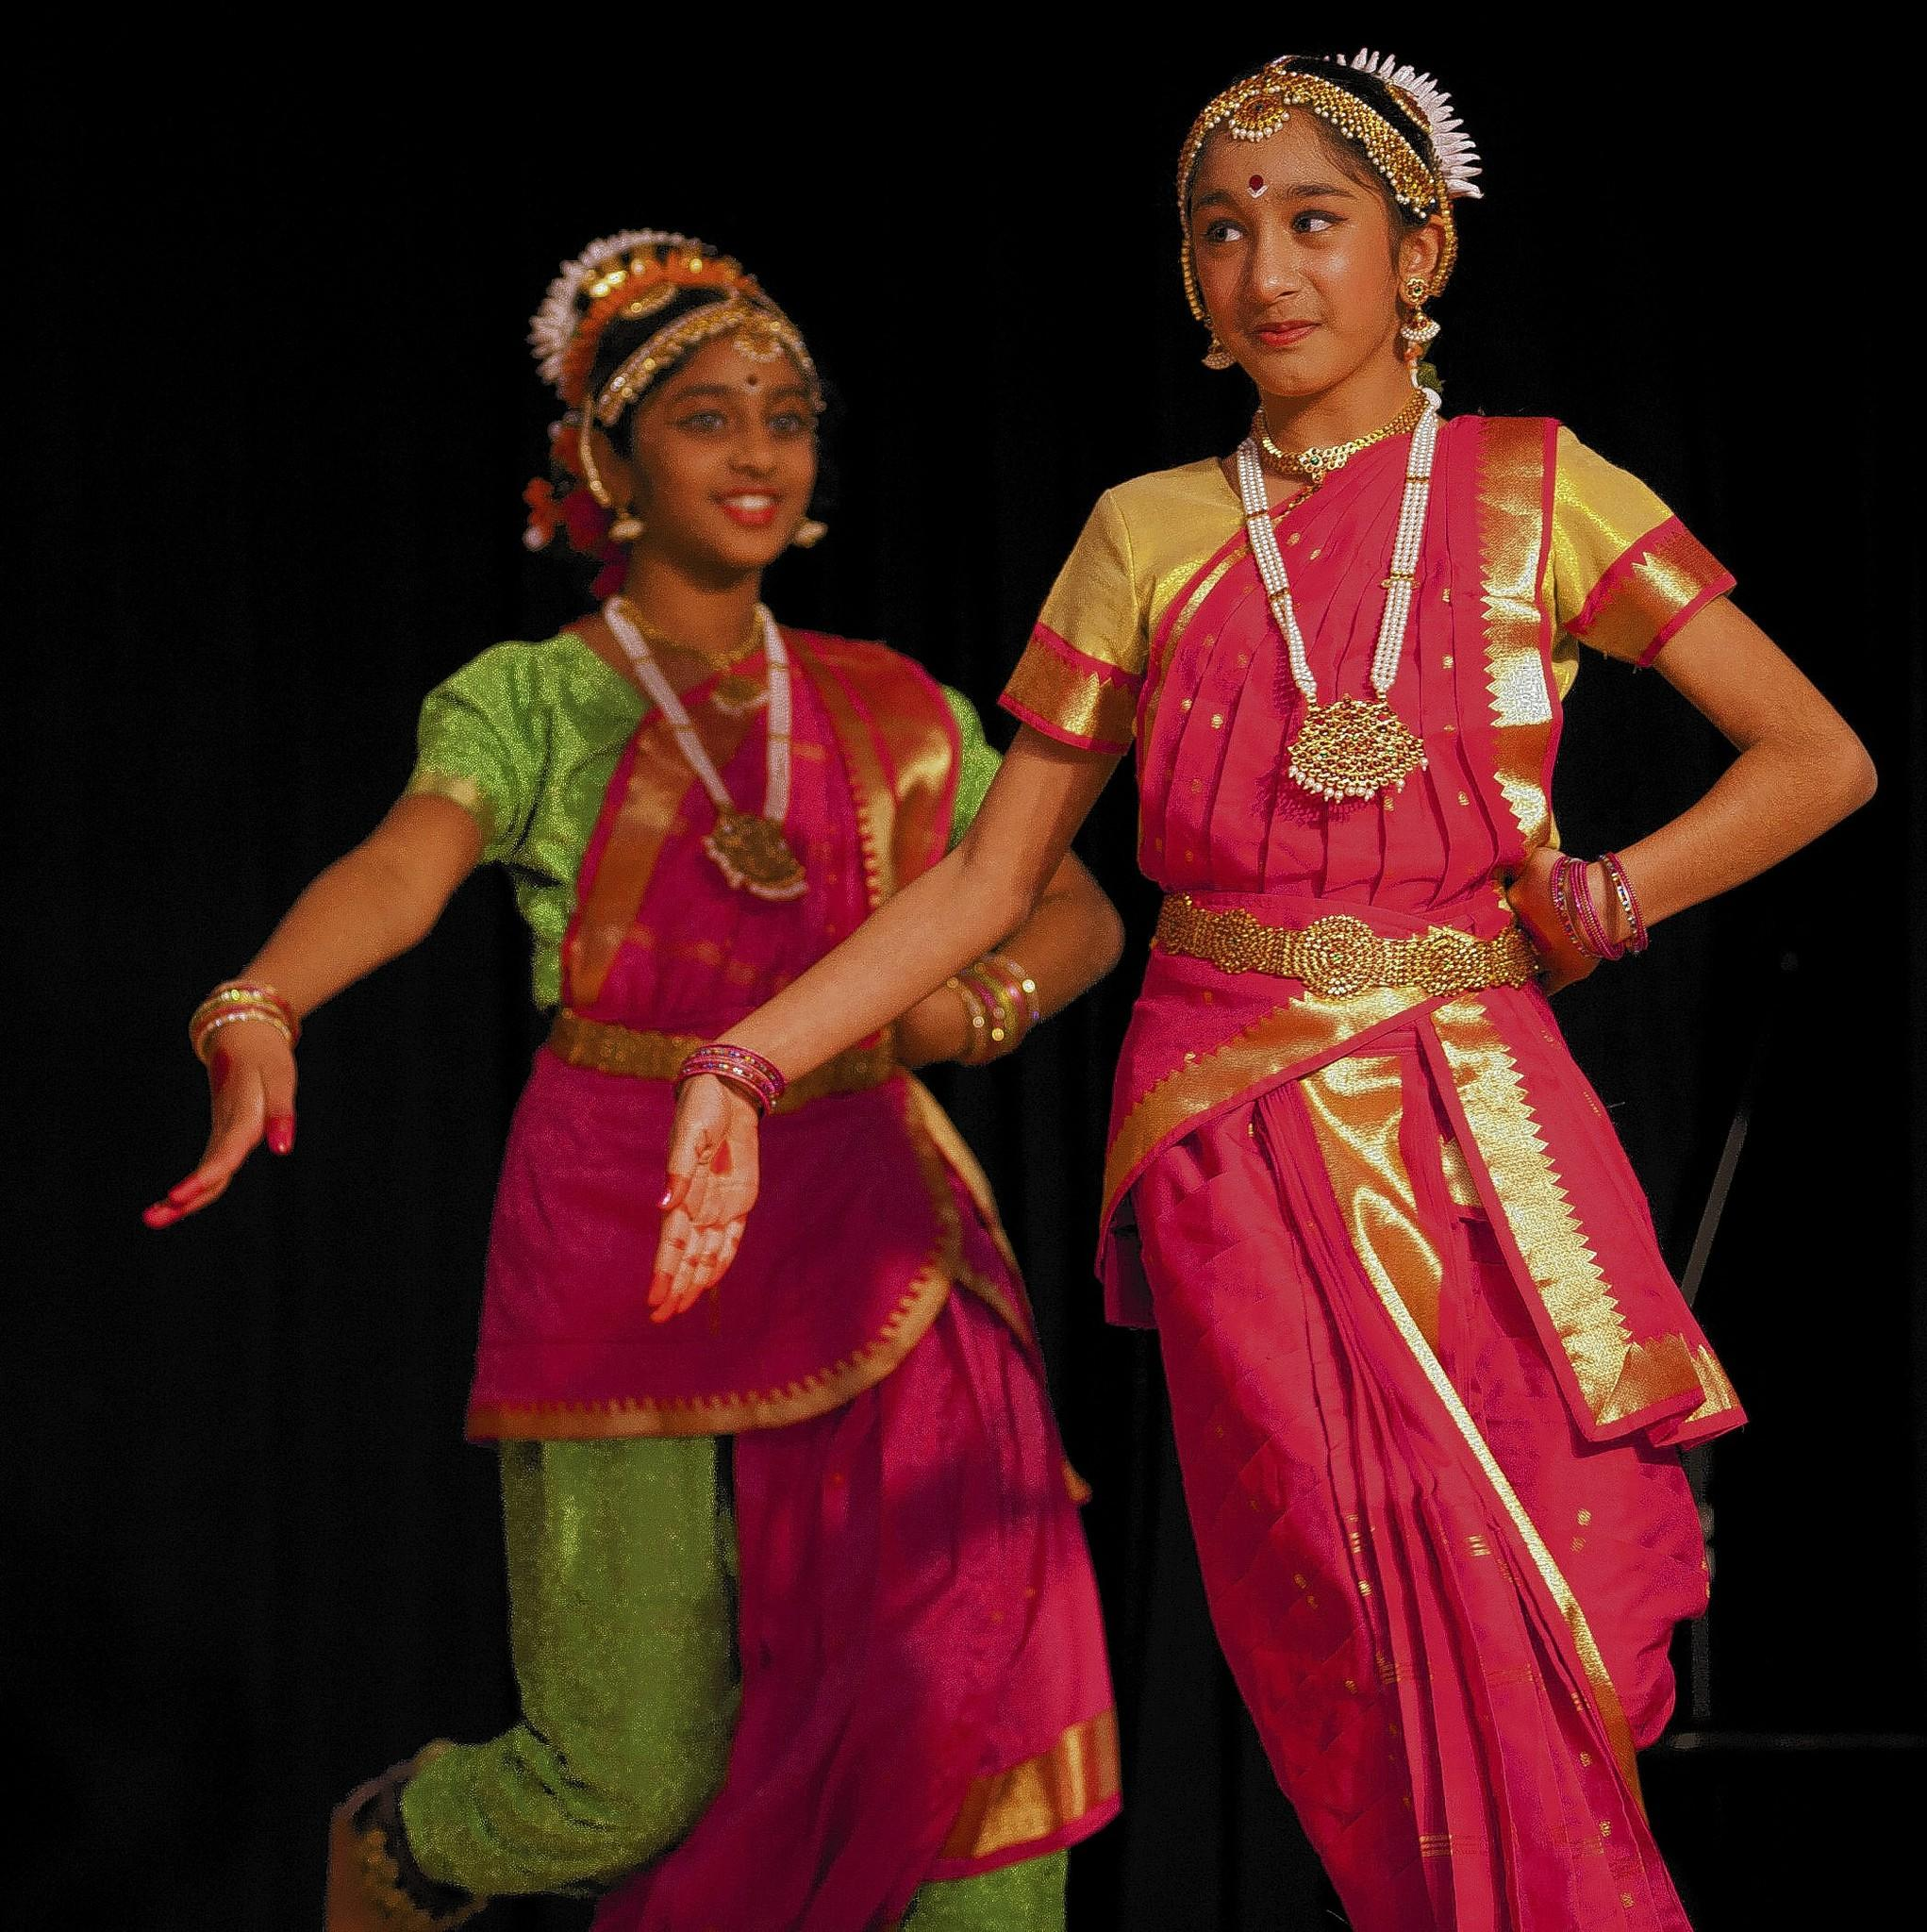 Maya Parekh (right) and Sunayana Jampanaboyana perform a traditional dance at the 25th annual Festival of Saraswati Puja at the Lehigh Valley Hindu Temple in Allentown.